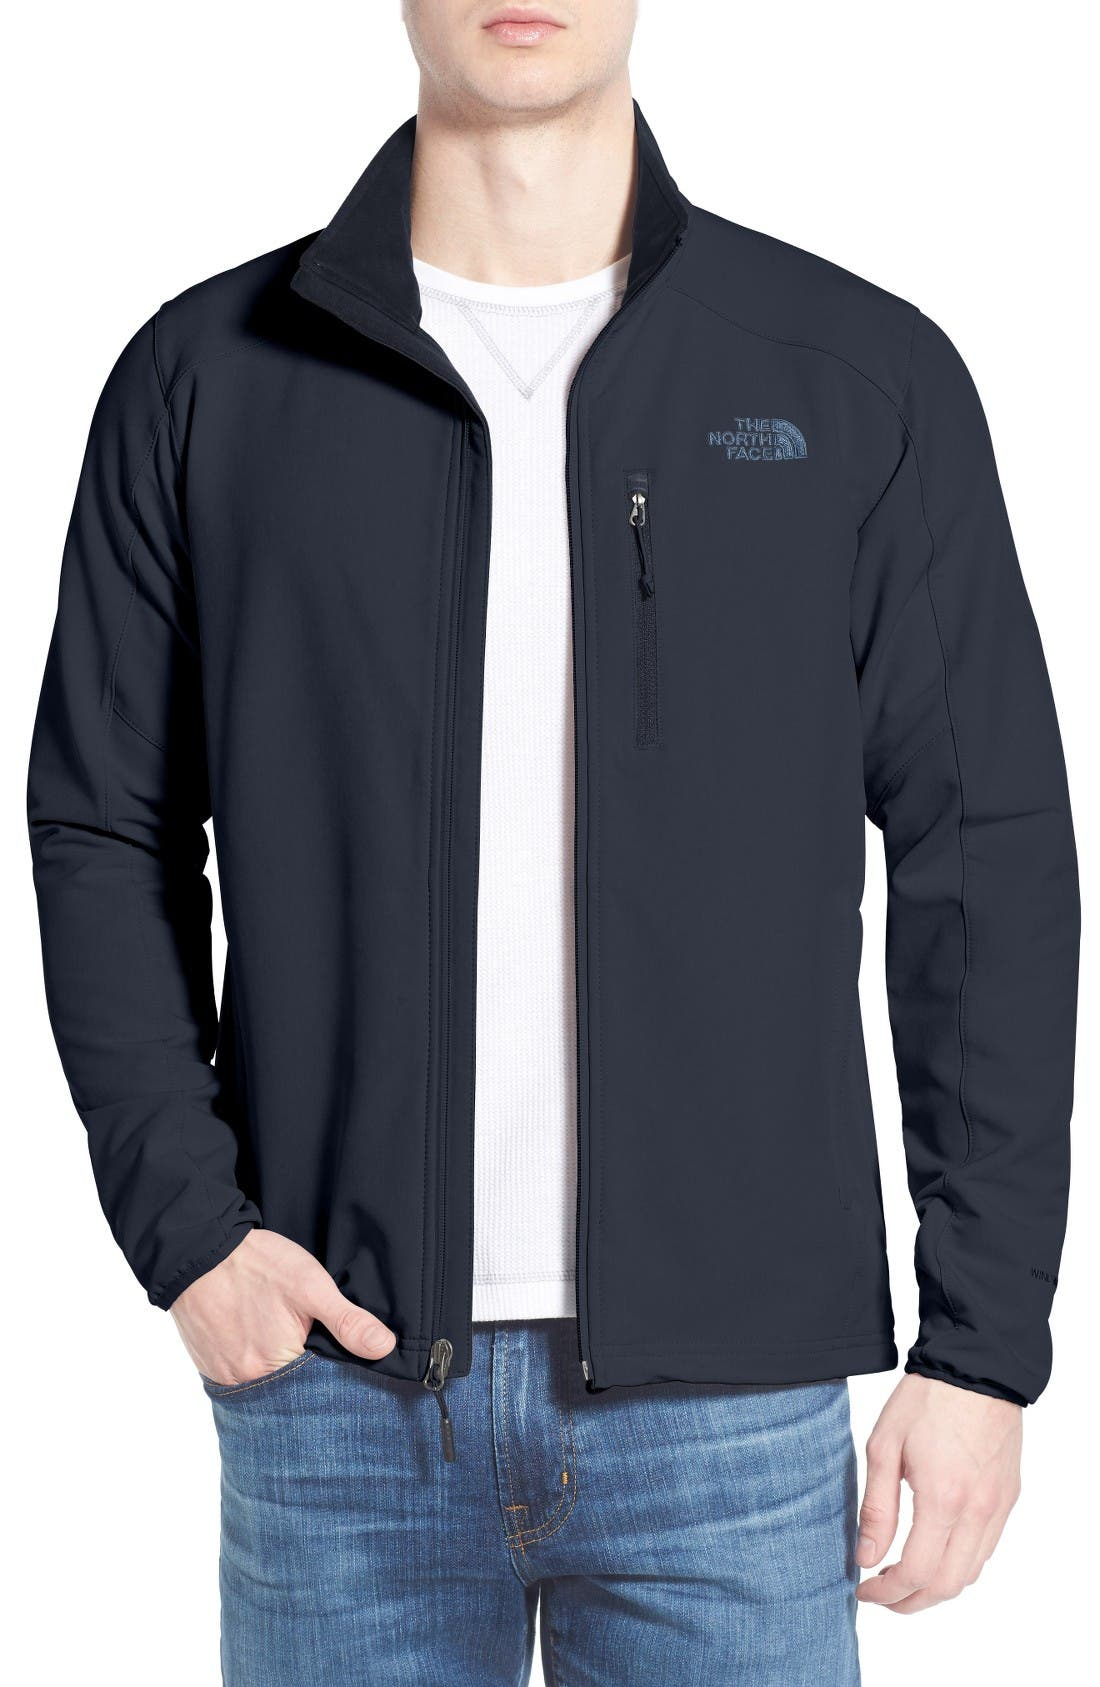 Alternate Image 1 Selected - The North Face Apex Pneumatic Jacket